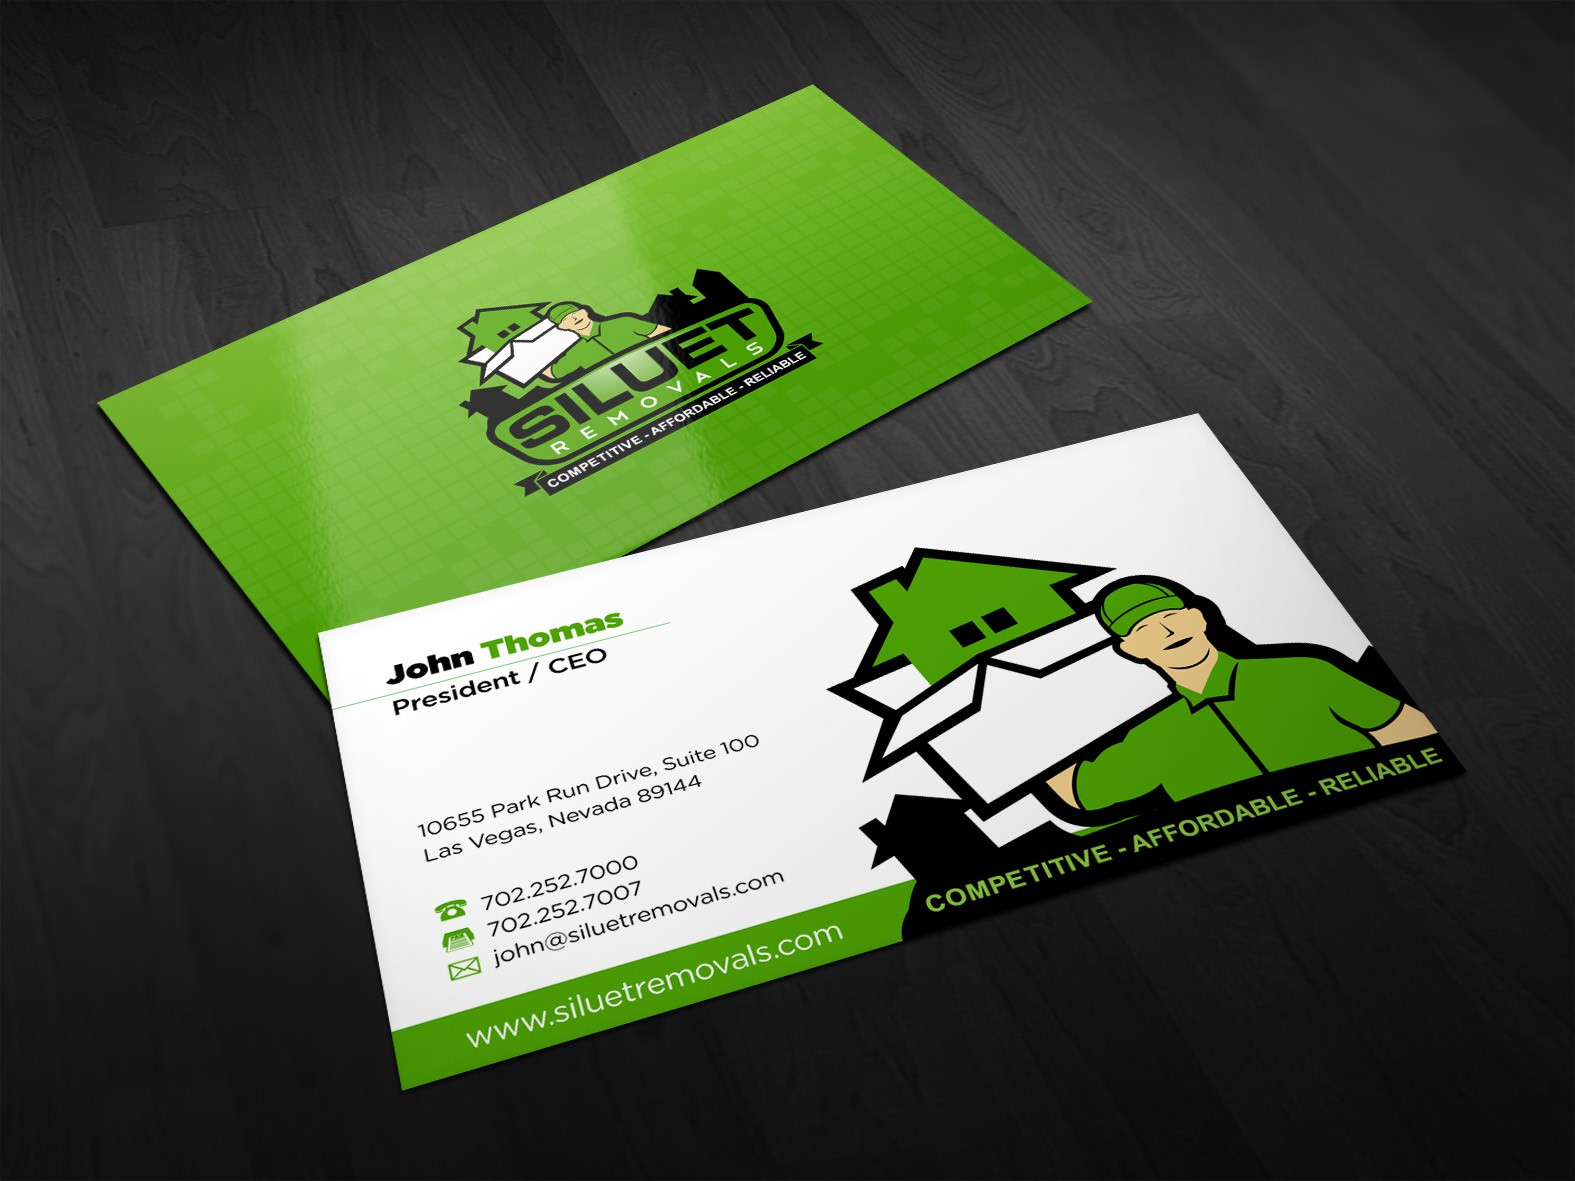 Siluet Removals needs a new stationery